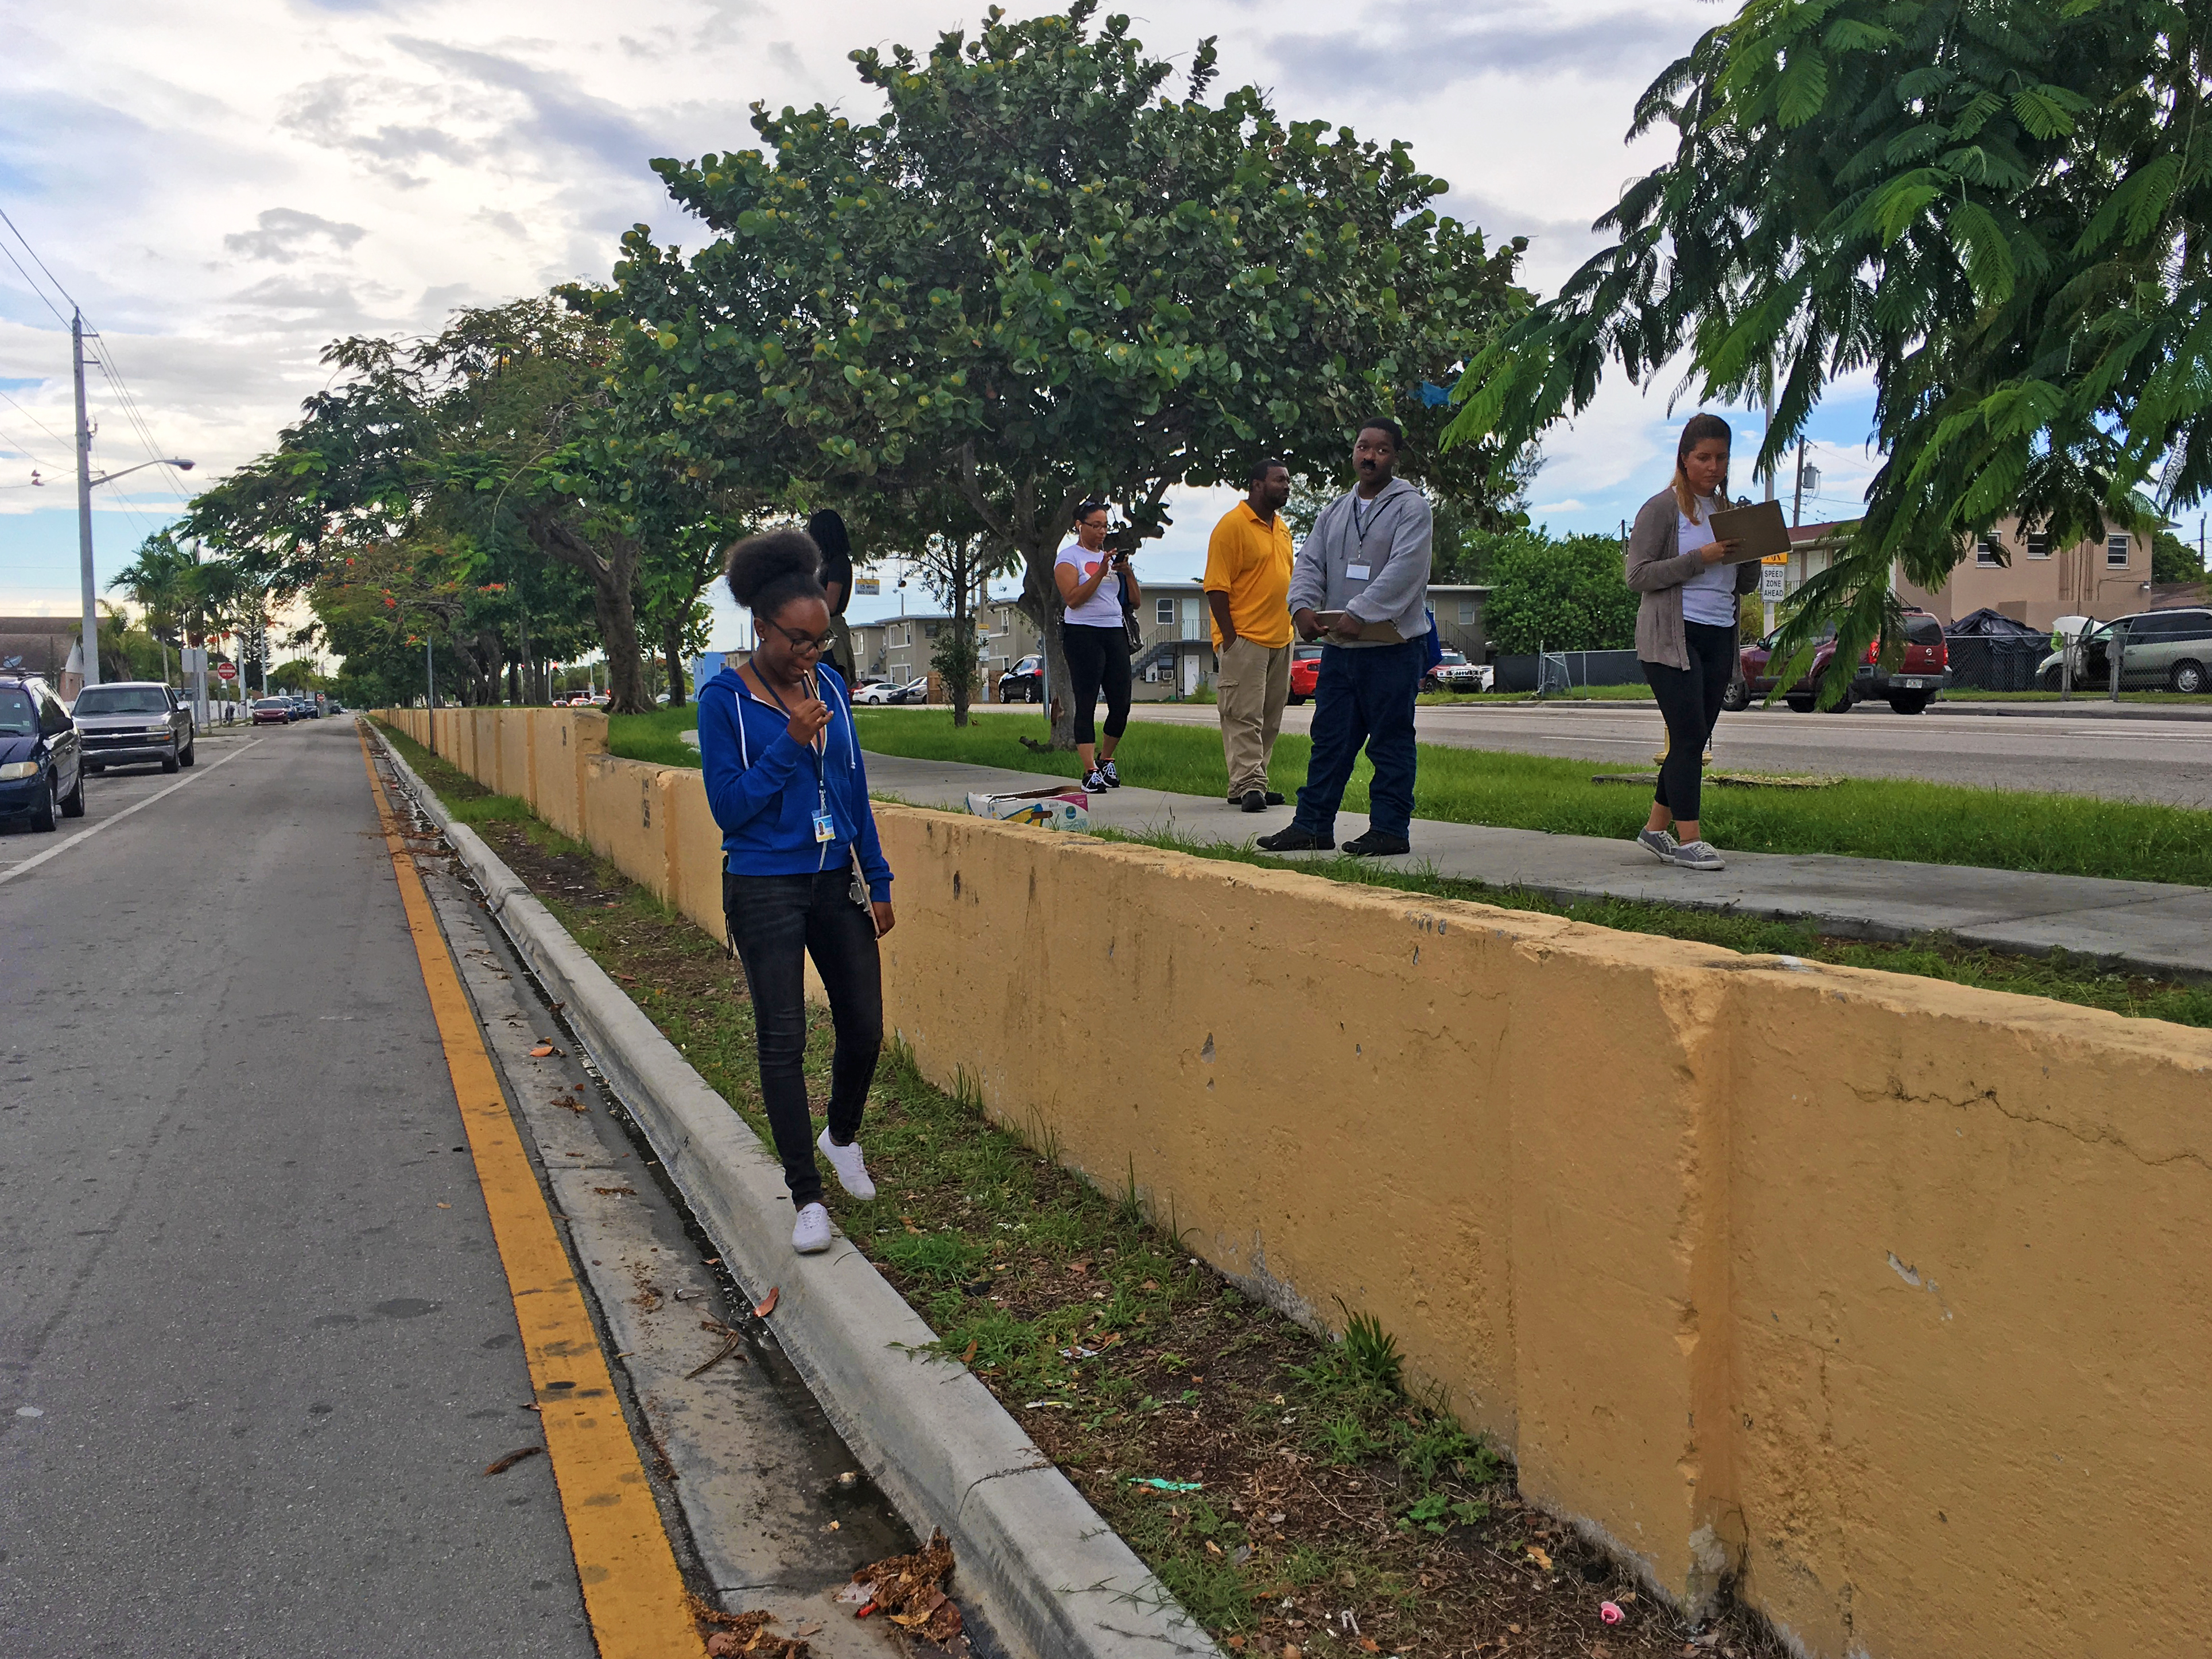 Teenagers walking along remains of race wall in Liberty City, Florida